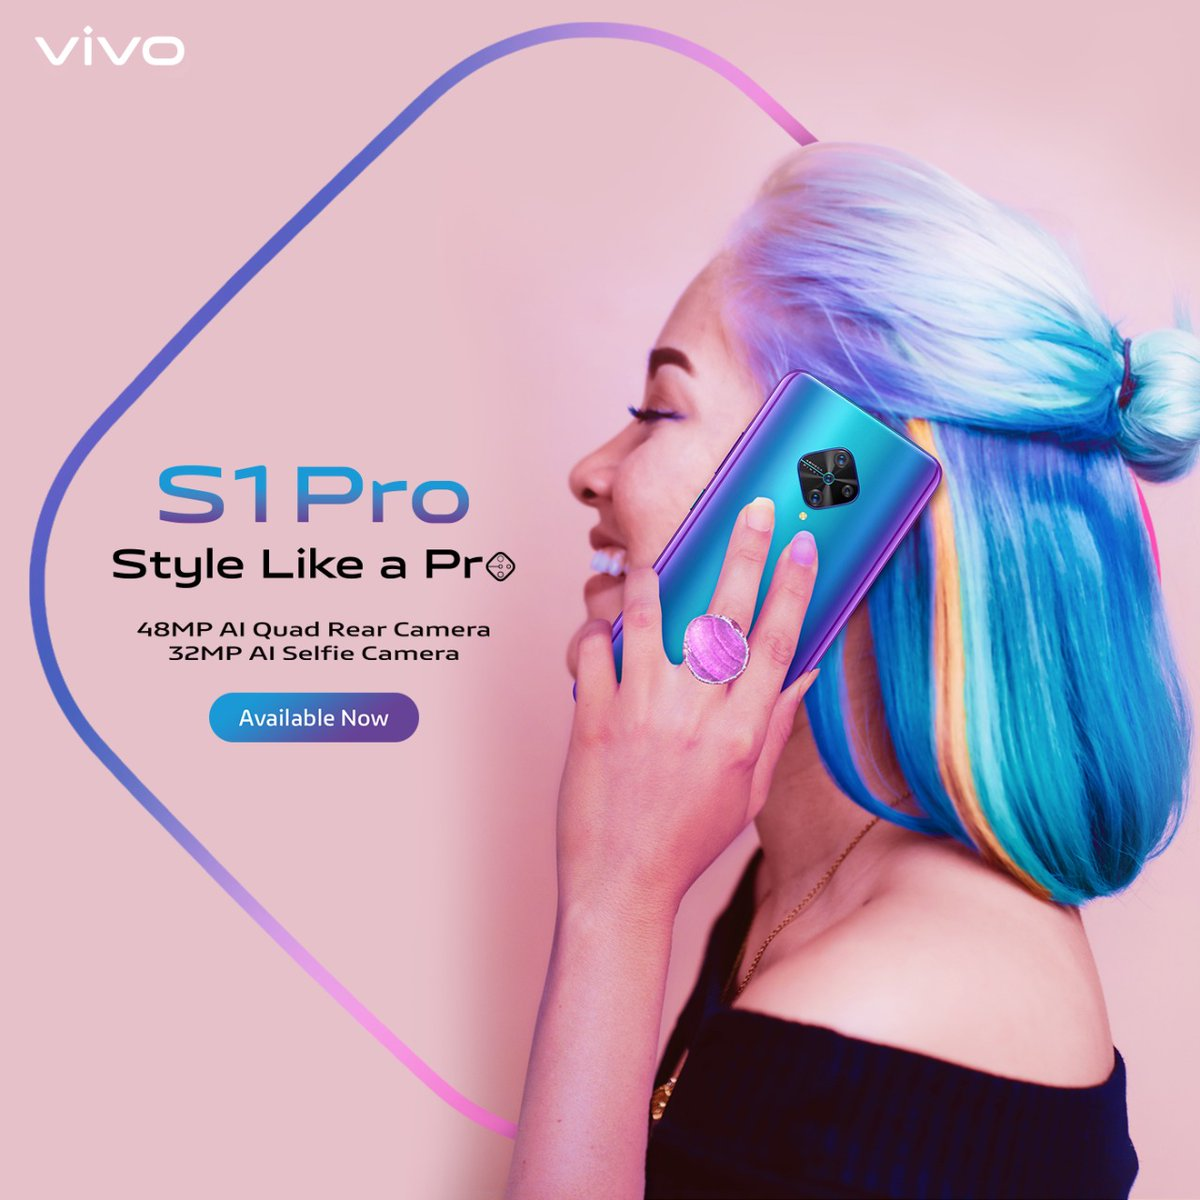 No matter what the look, the Jazzy Blue #vivoS1Pro goes well with it. Grab the style icon today at INR 19,990/- Enjoy cashbacks, EMI & One Time Screen Replacement offers on every purchase. #StyleLikeAProKnow more : http://bit.ly/2FhaiH1